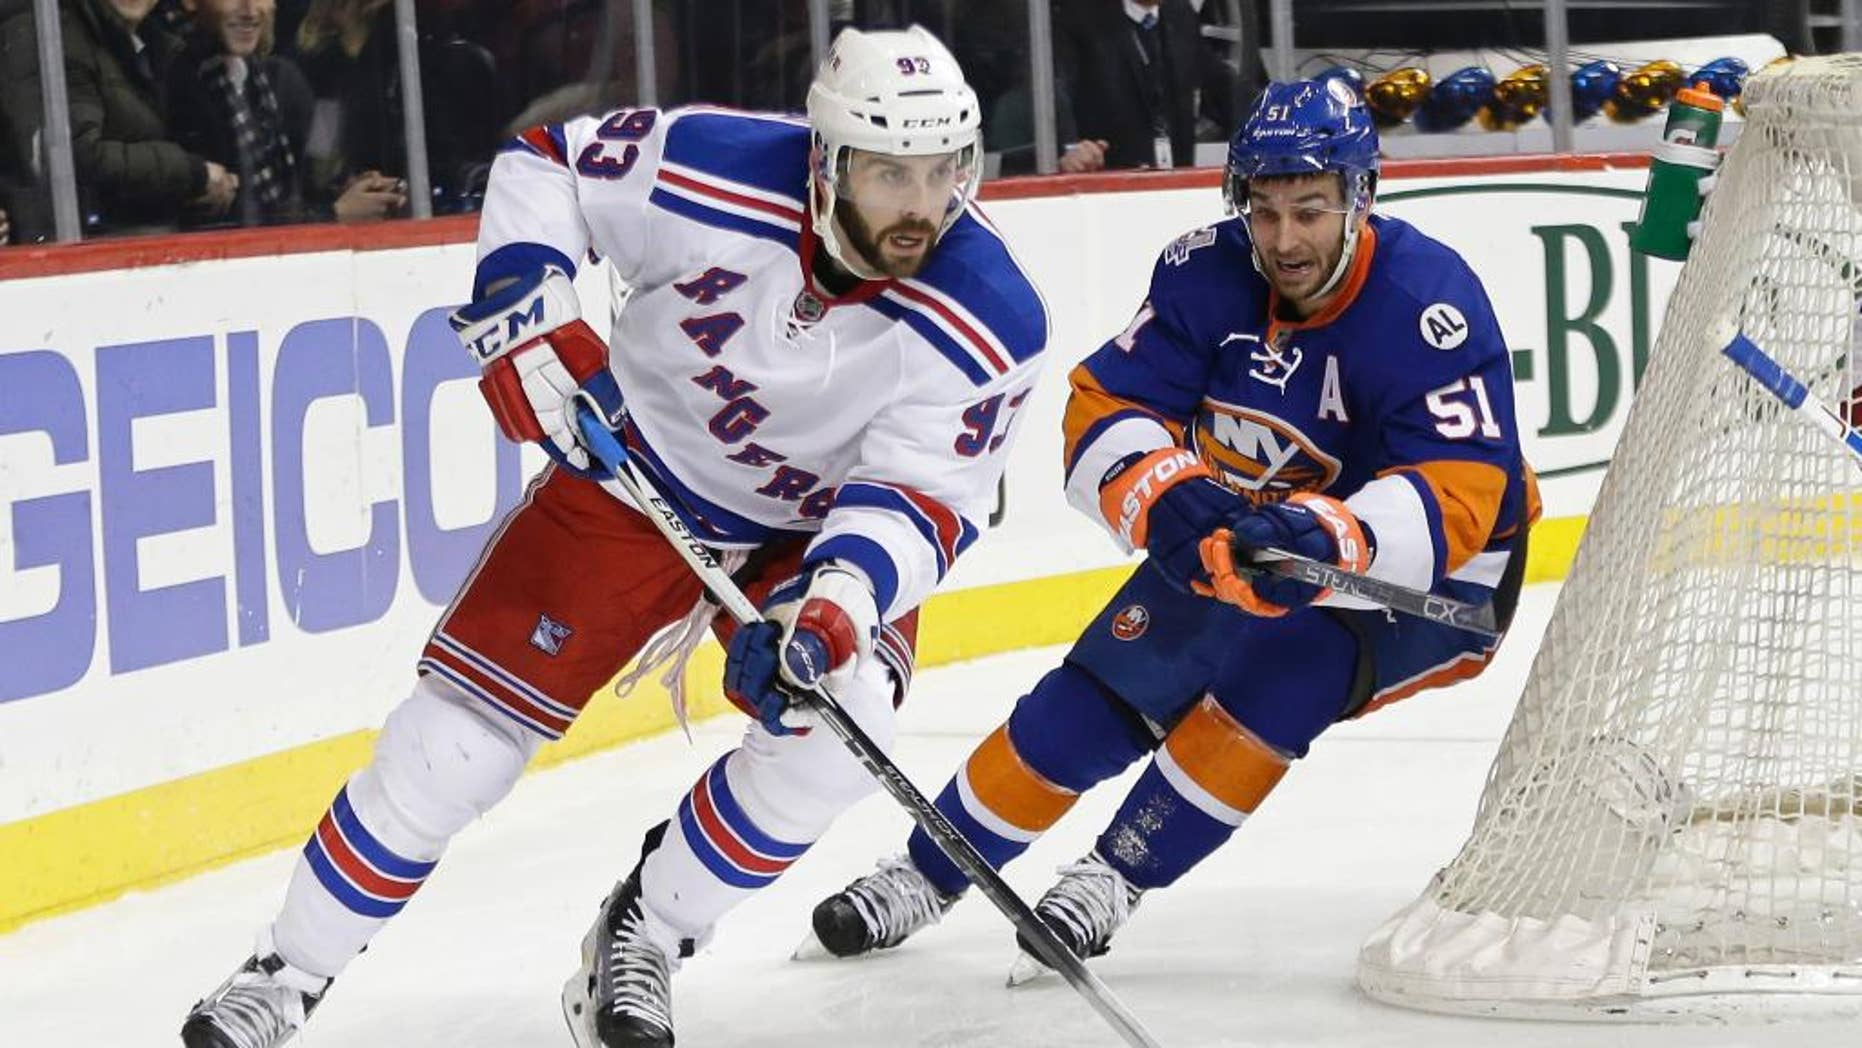 FILE - In this Jan. 14, 2016, file photo, New York Rangers' Keith Yandle (93) works with the puck as New York Islanders' Frans Nielsen (51) follows during an NHL hockey game in New York. Yandle signed with the Florida Panthers early Thursday, June 23, three days after the team acquired the high-scoring defenseman's negotiating rights in a trade with the Rangers. The Panthers sent a sixth-round pick in the draft this week to the Rangers on Monday, and now owes New York a fourth-round pick next year after successfully signing the 29-year-old Yandle. He was set to become an unrestricted free agent July 1. (AP Photo/Frank Franklin II, File)